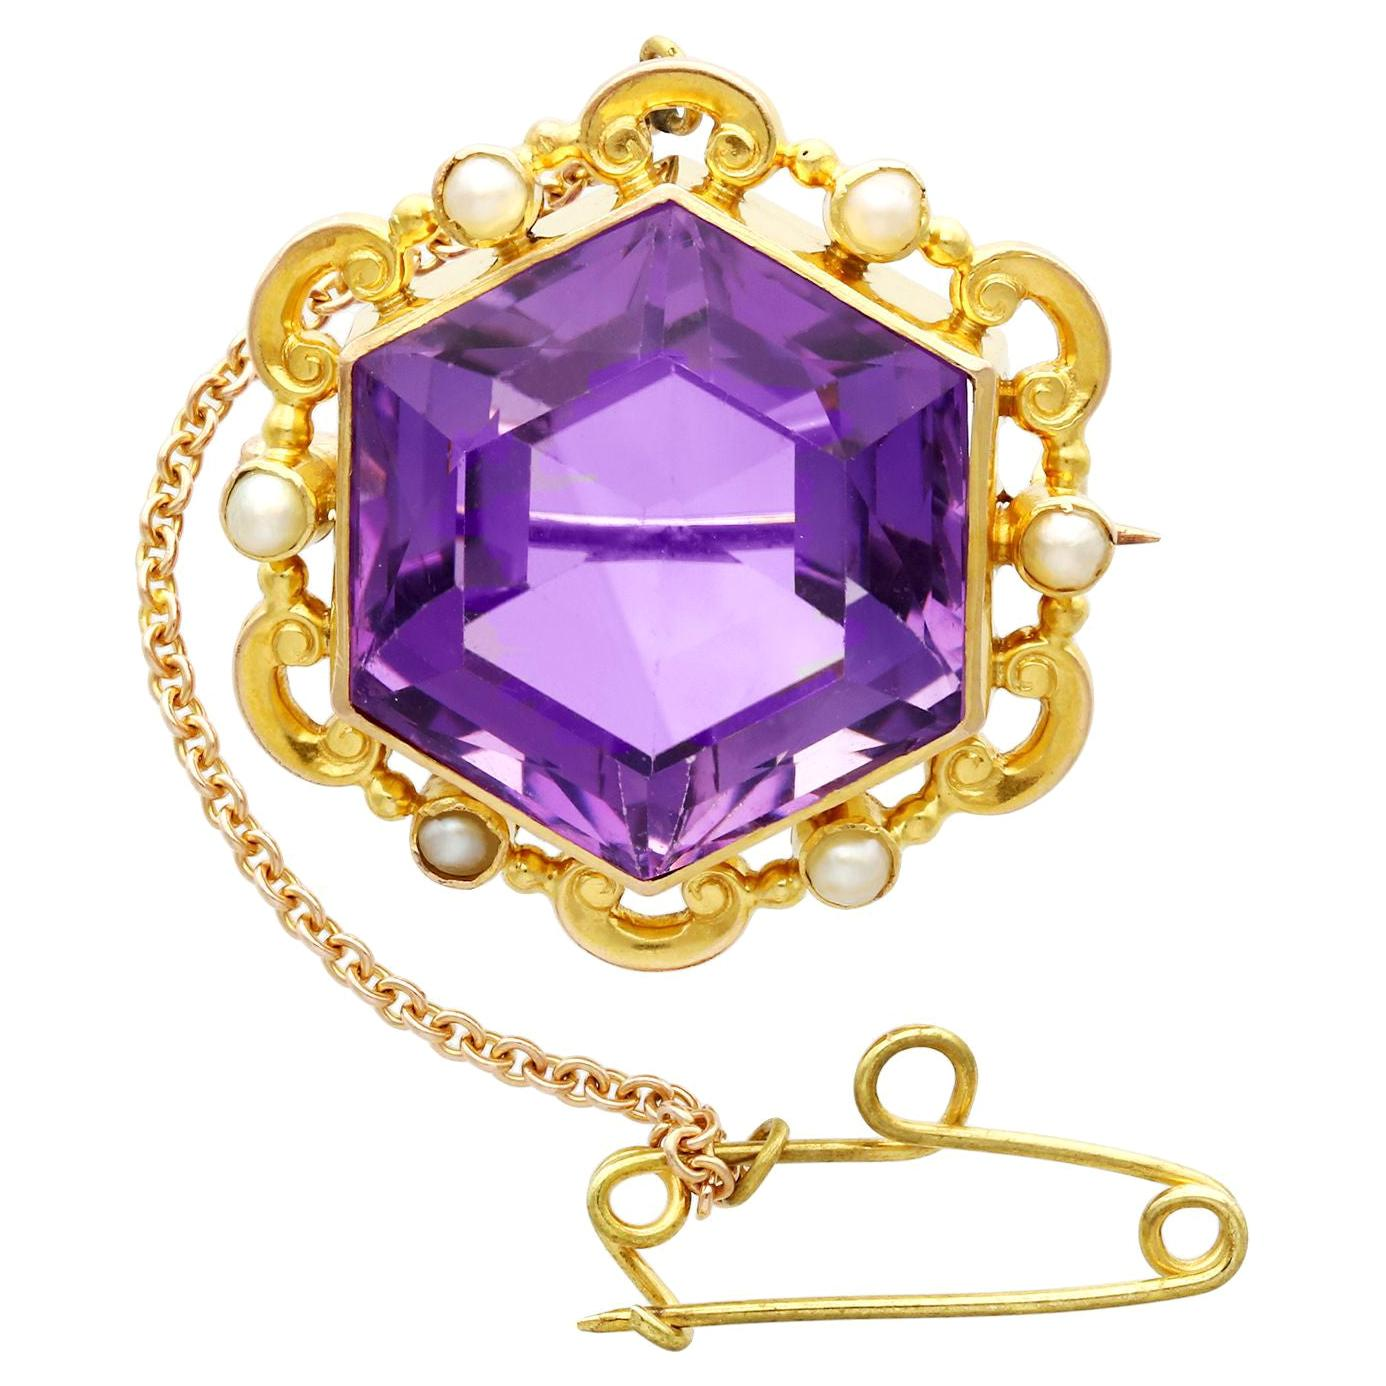 Antique 12.50 Carat Amethyst and Seed Pearl Yellow Gold Brooch, Circa 1890